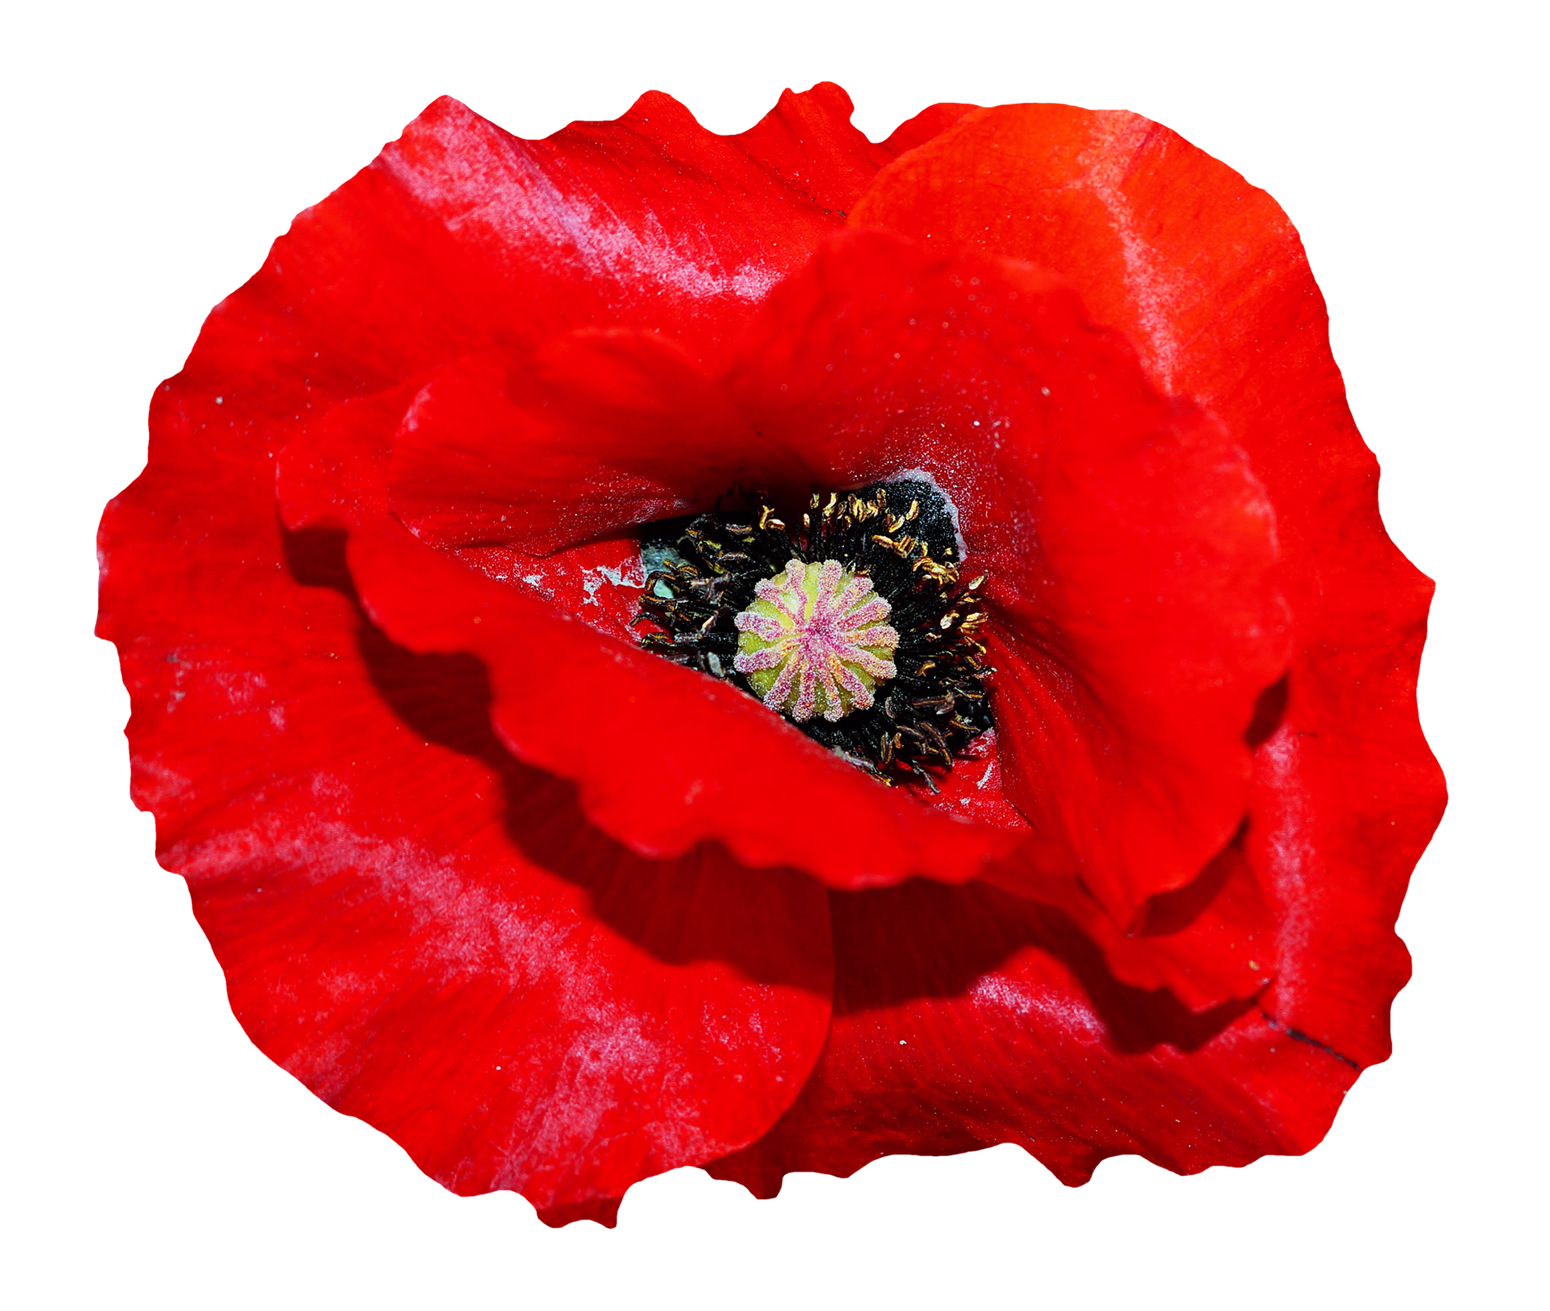 Download Poppy Flower PNG Image for Free